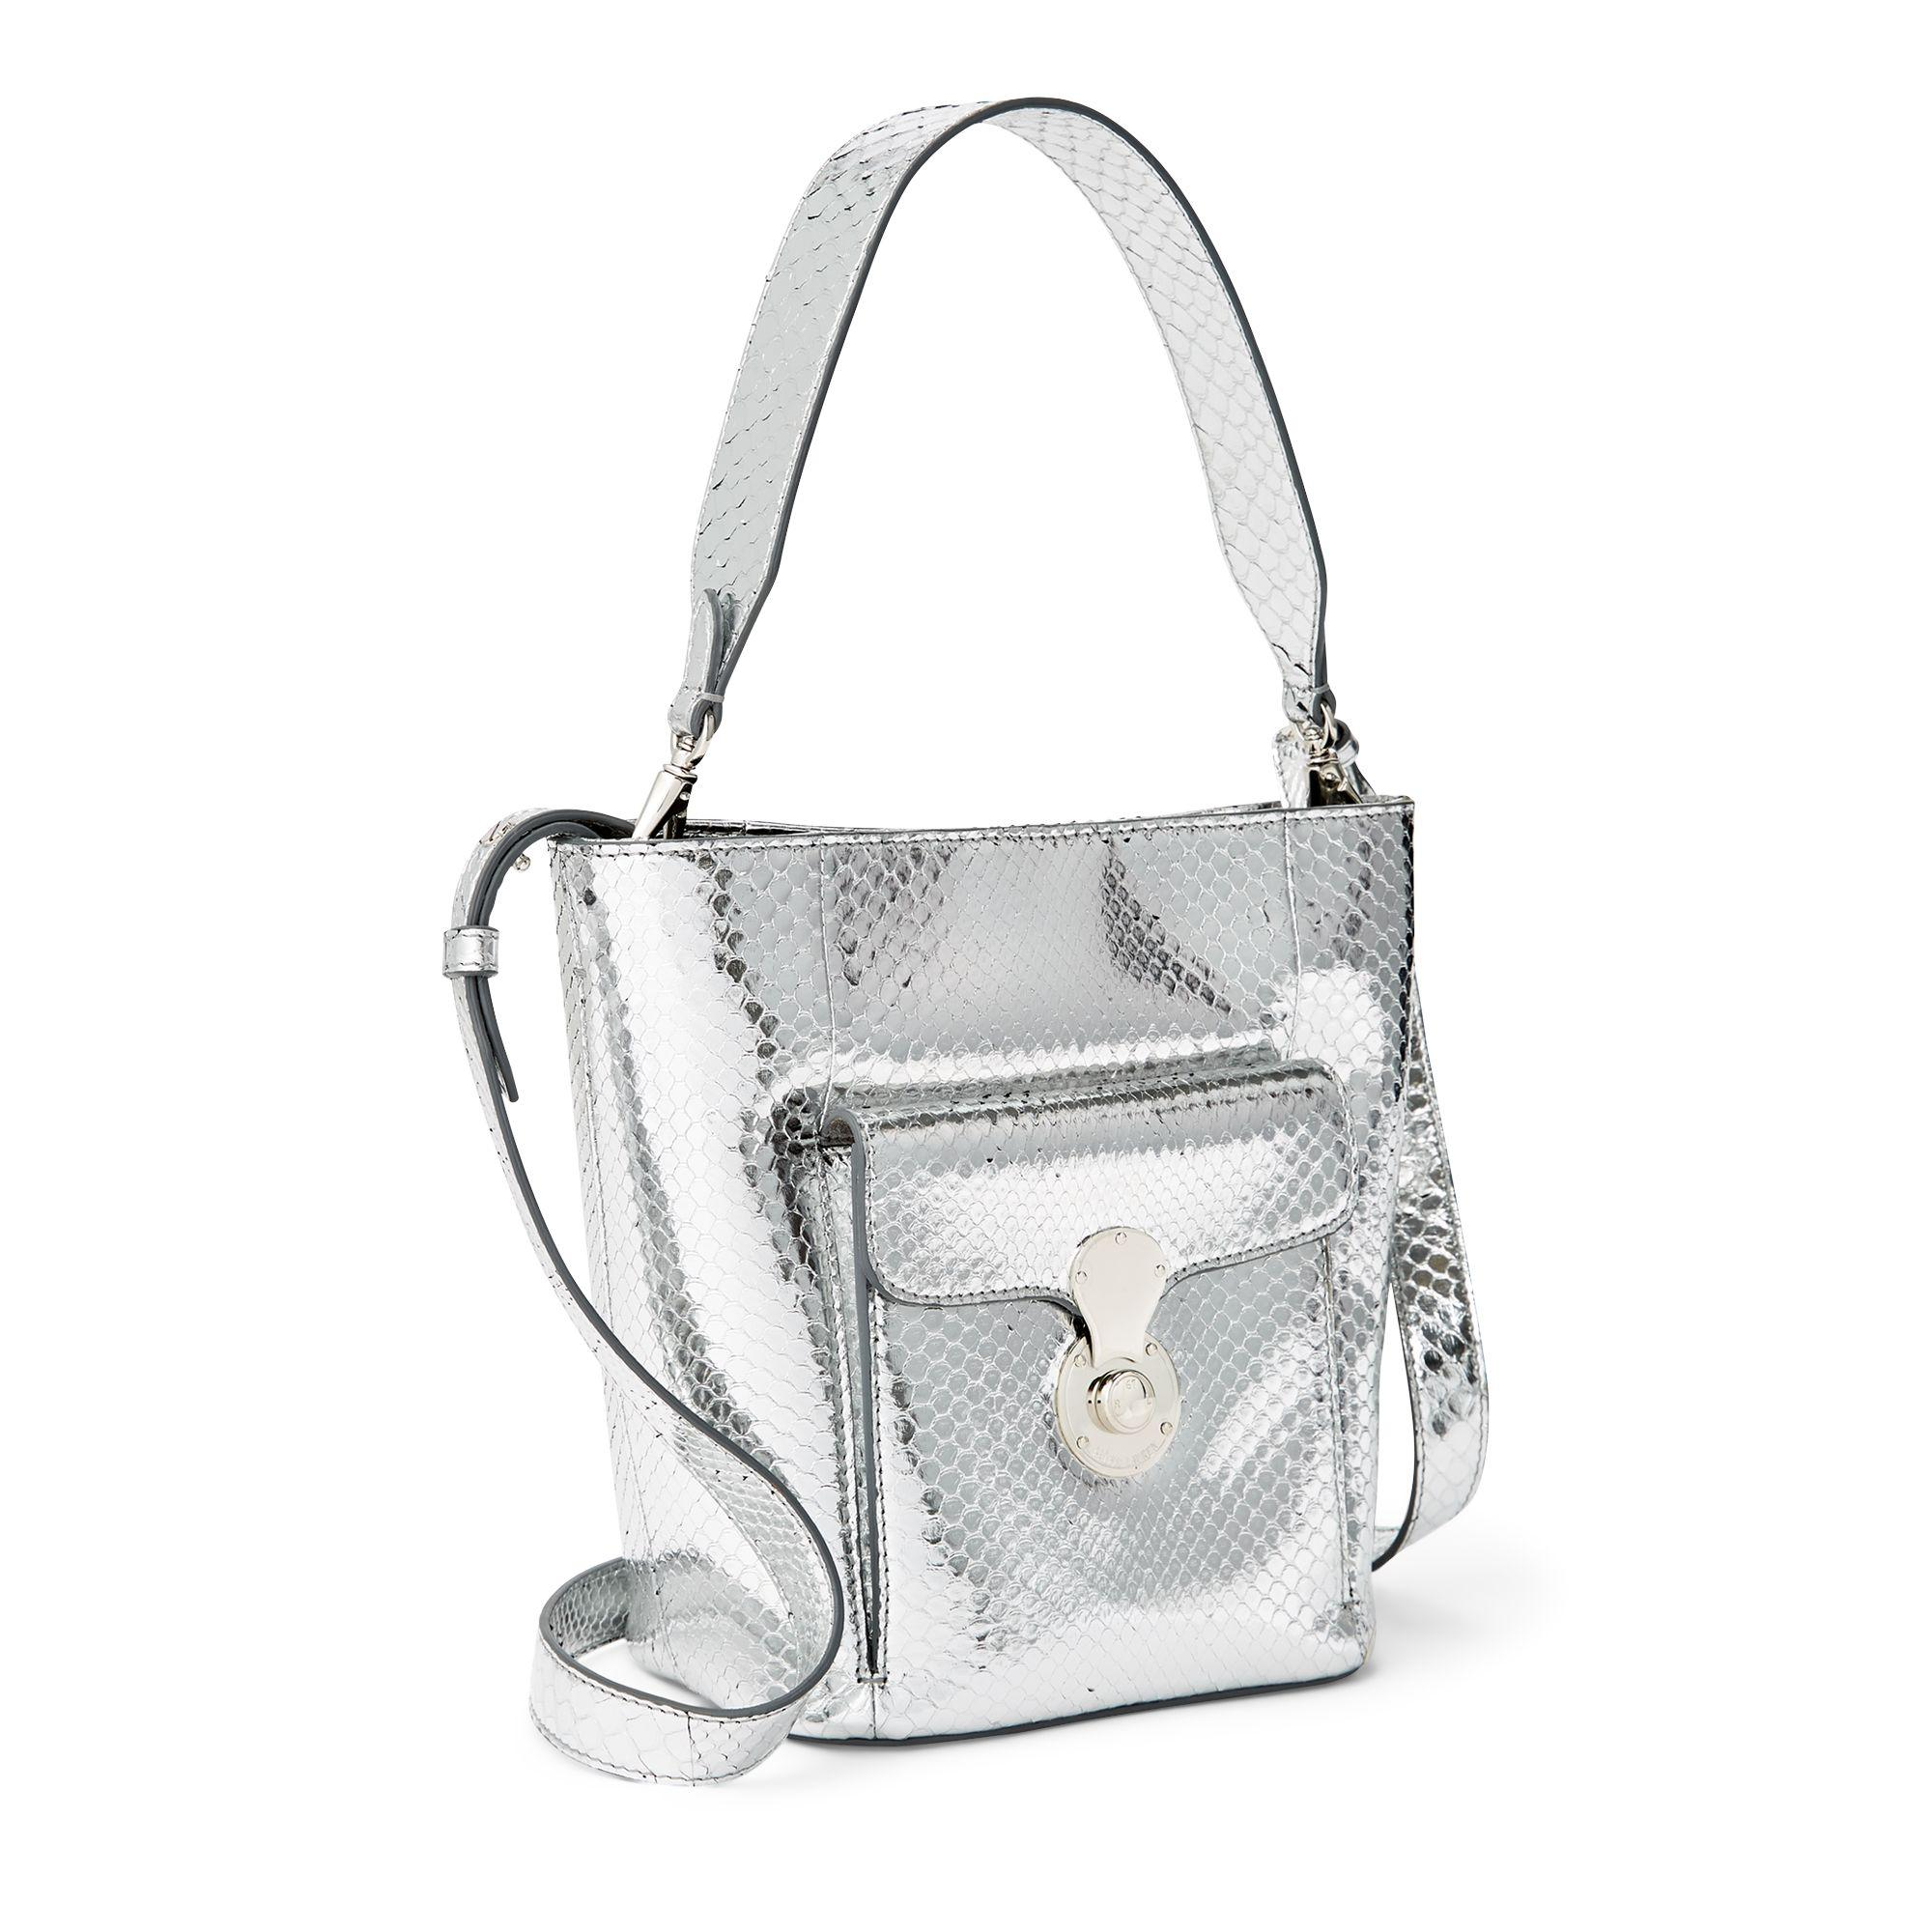 d3da3cdd1957 Ralph Lauren Calfskin Mini Rl Bucket Bag in Metallic - Lyst